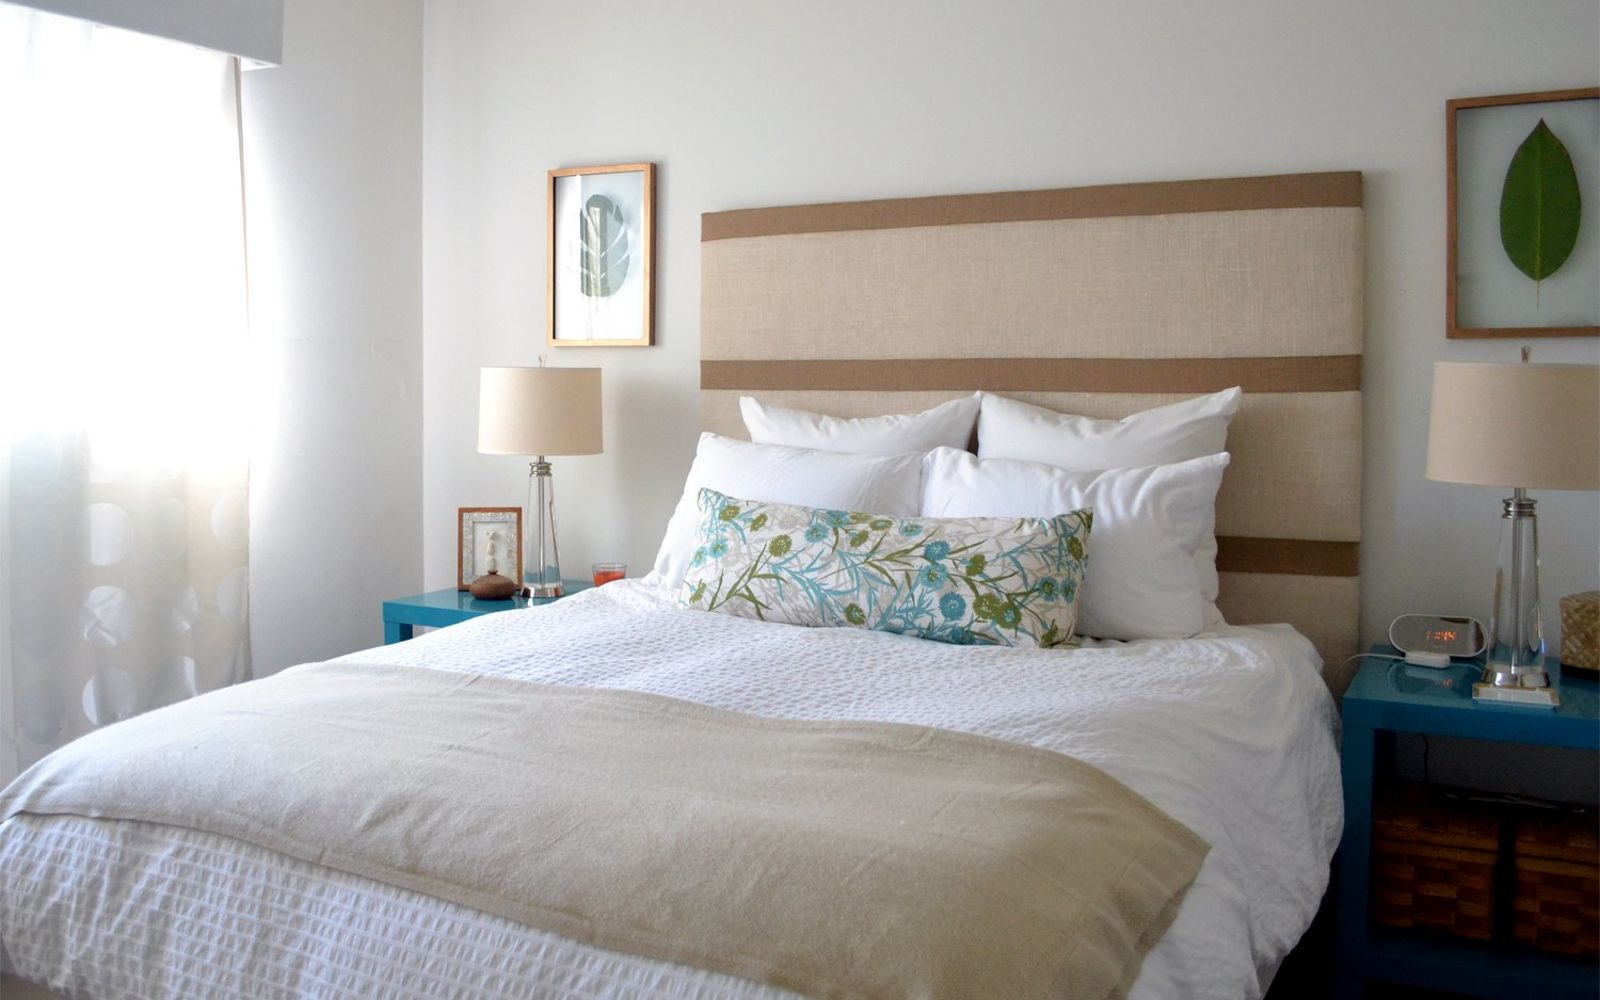 s these are the diy headboard ideas you ve been dreaming of, Get This Country Burlap Beauty